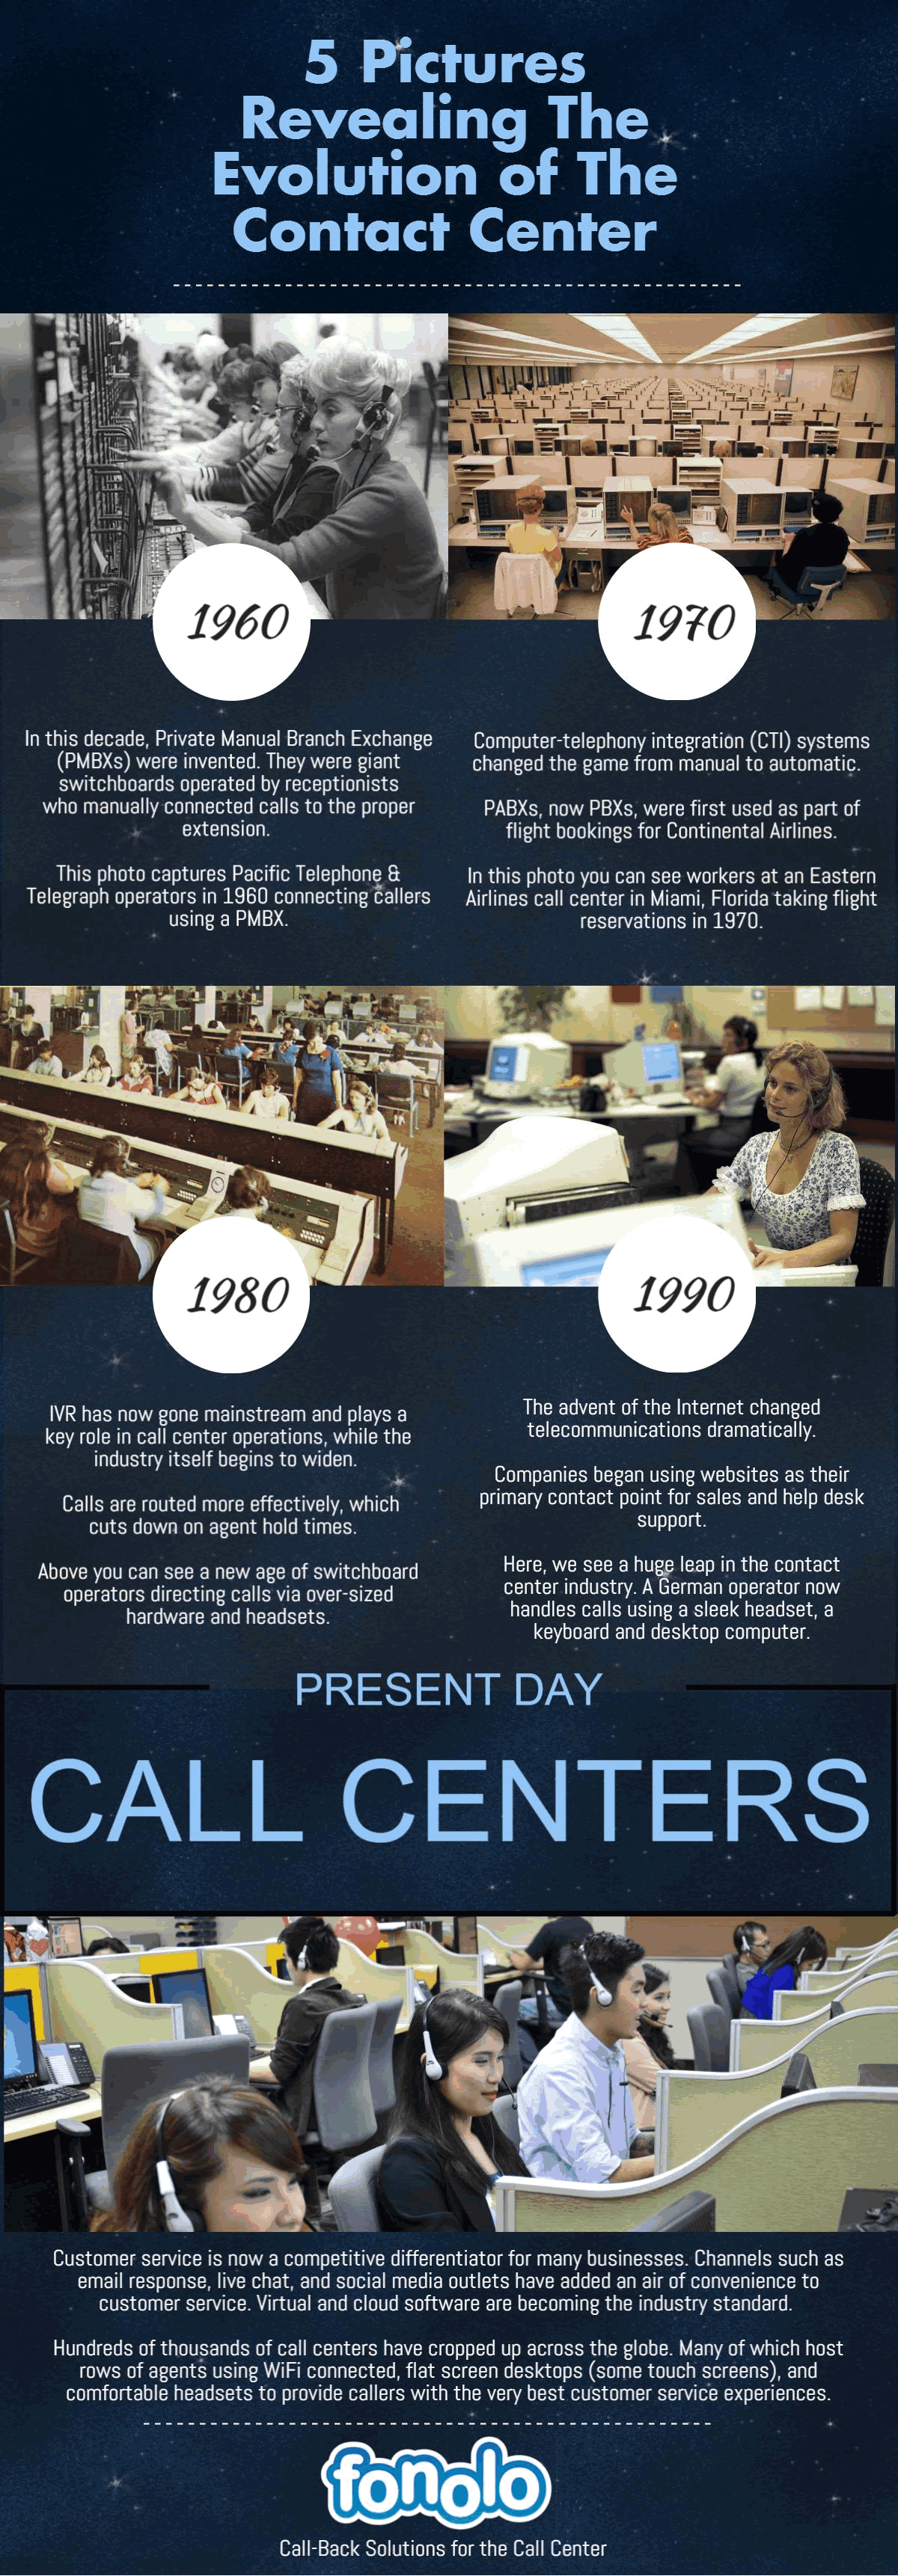 5 Pictures Revealing the Evolution of the Contact Center